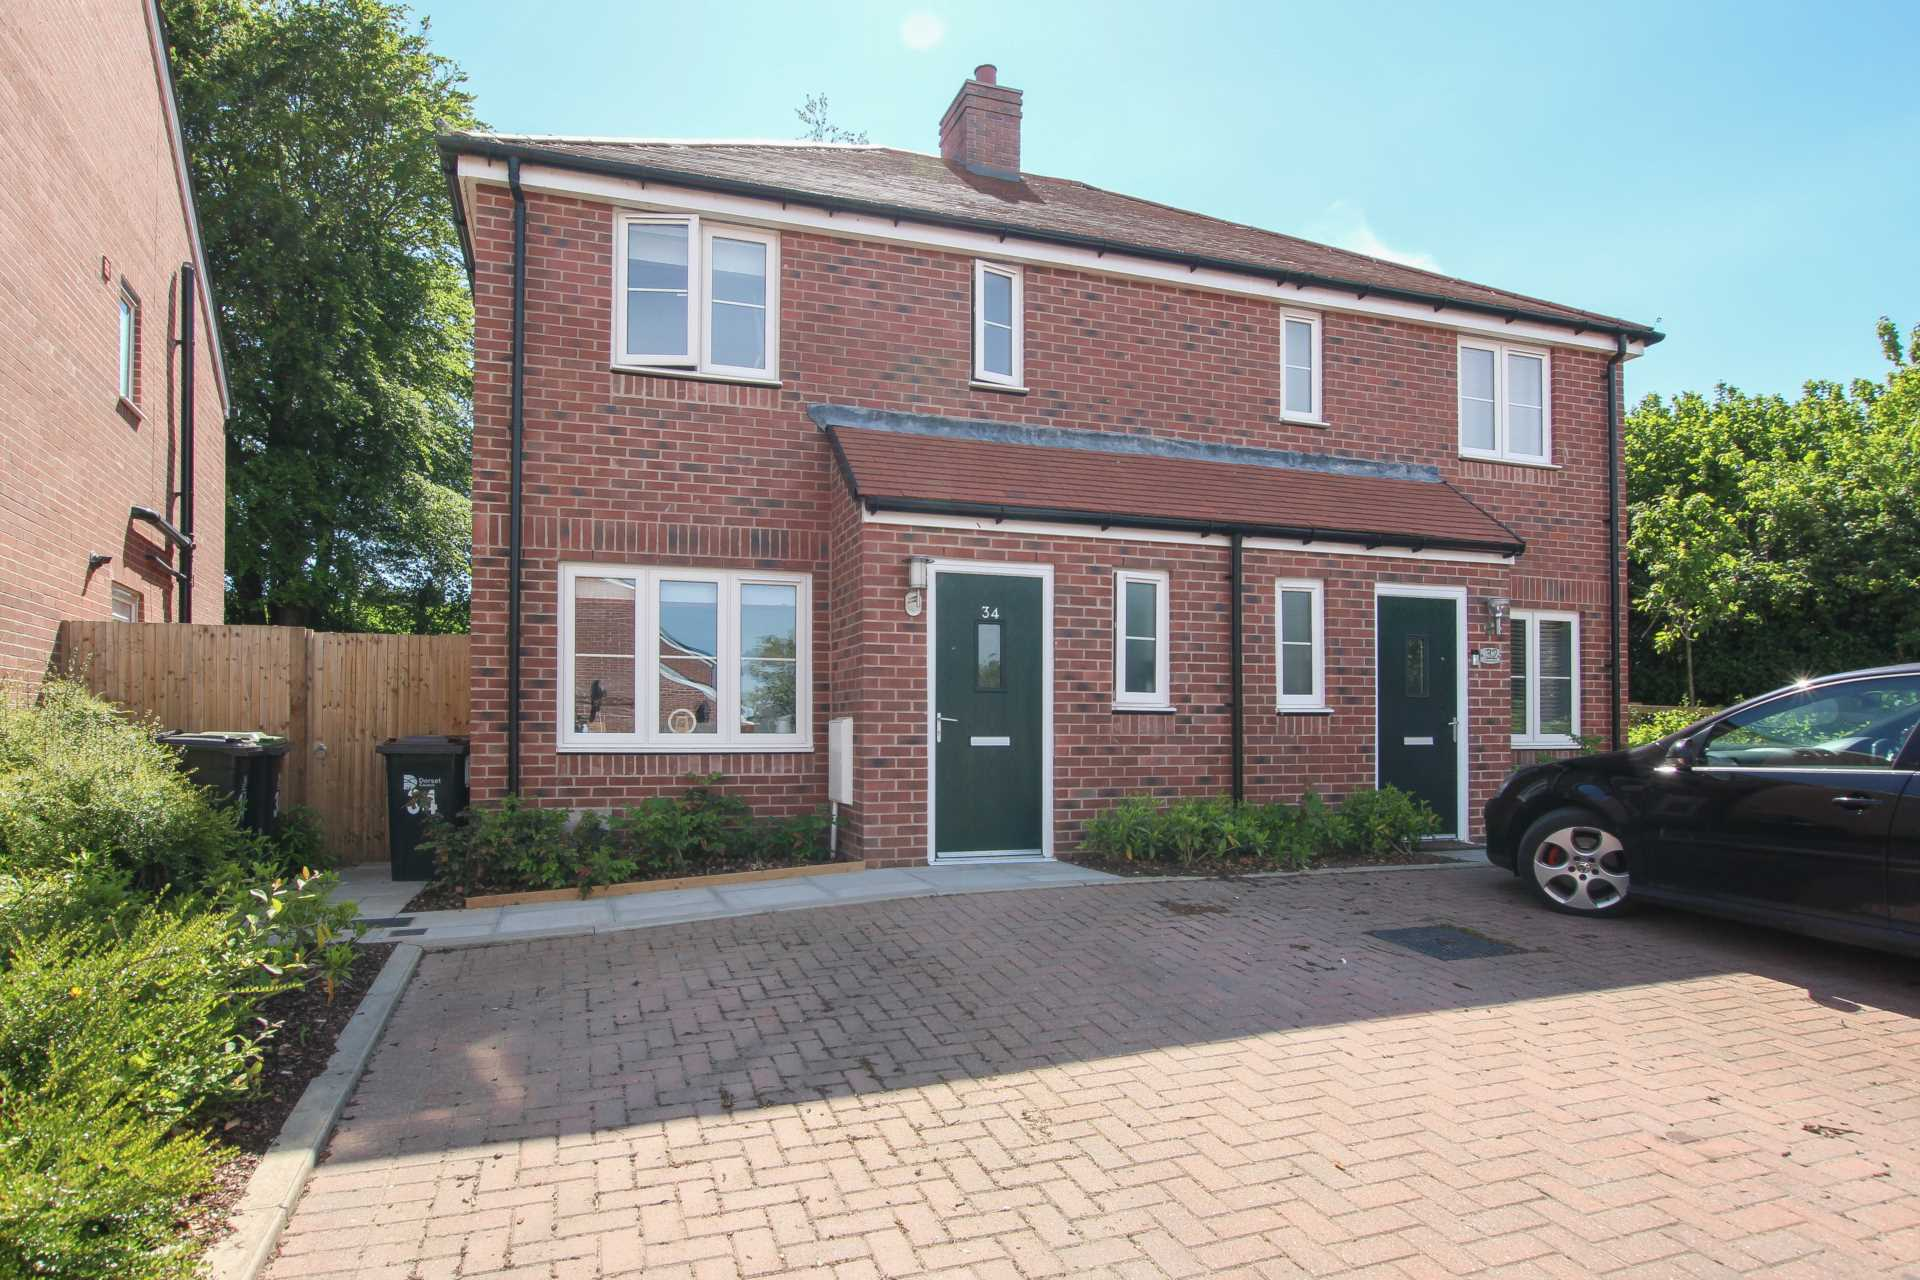 3 bed semi-detached house for sale in Esme Avenue, Blandford St Mary, Blandford Forum - Property Image 1